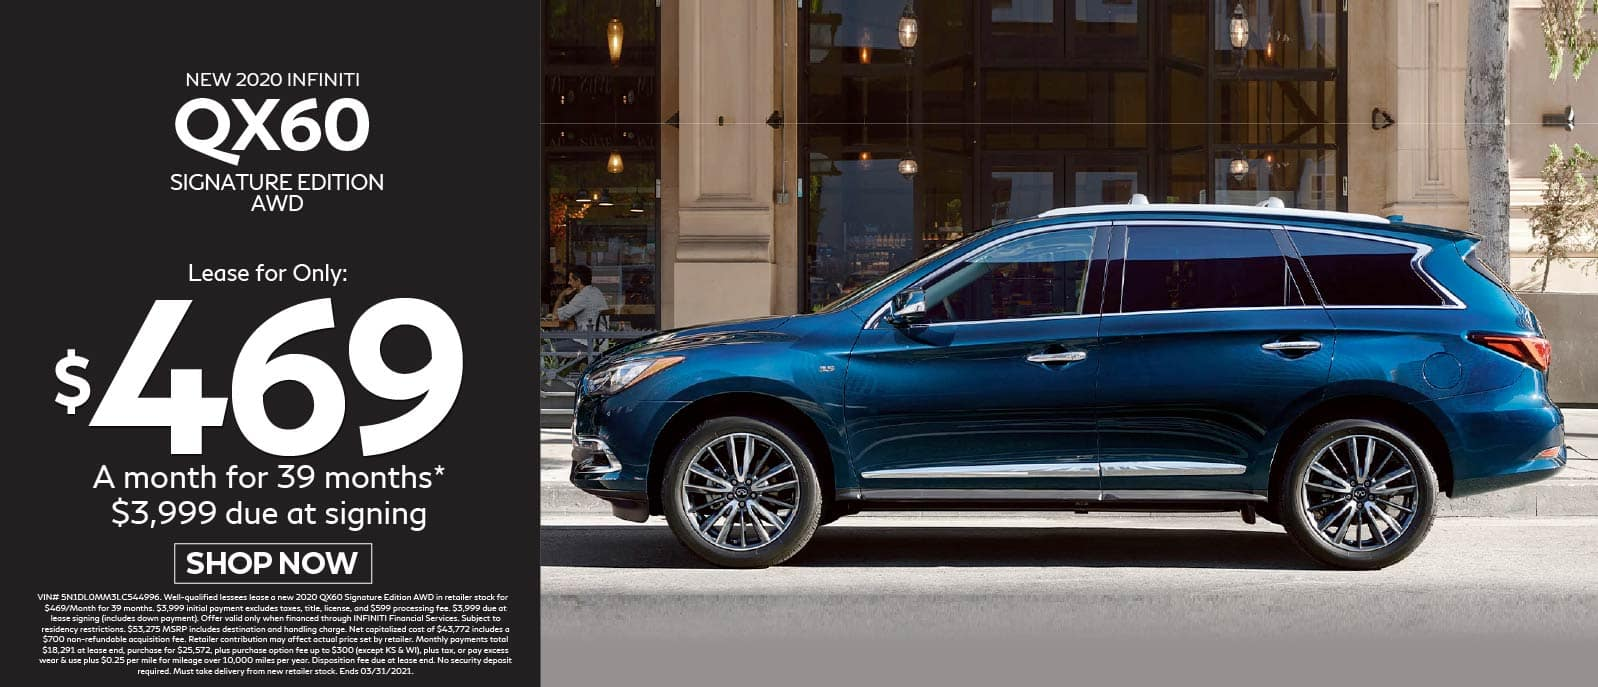 New 2020 INFINITI QX60 Signature Edition AWD Lease for $469 a month for 39 months, $3,999 due at signing